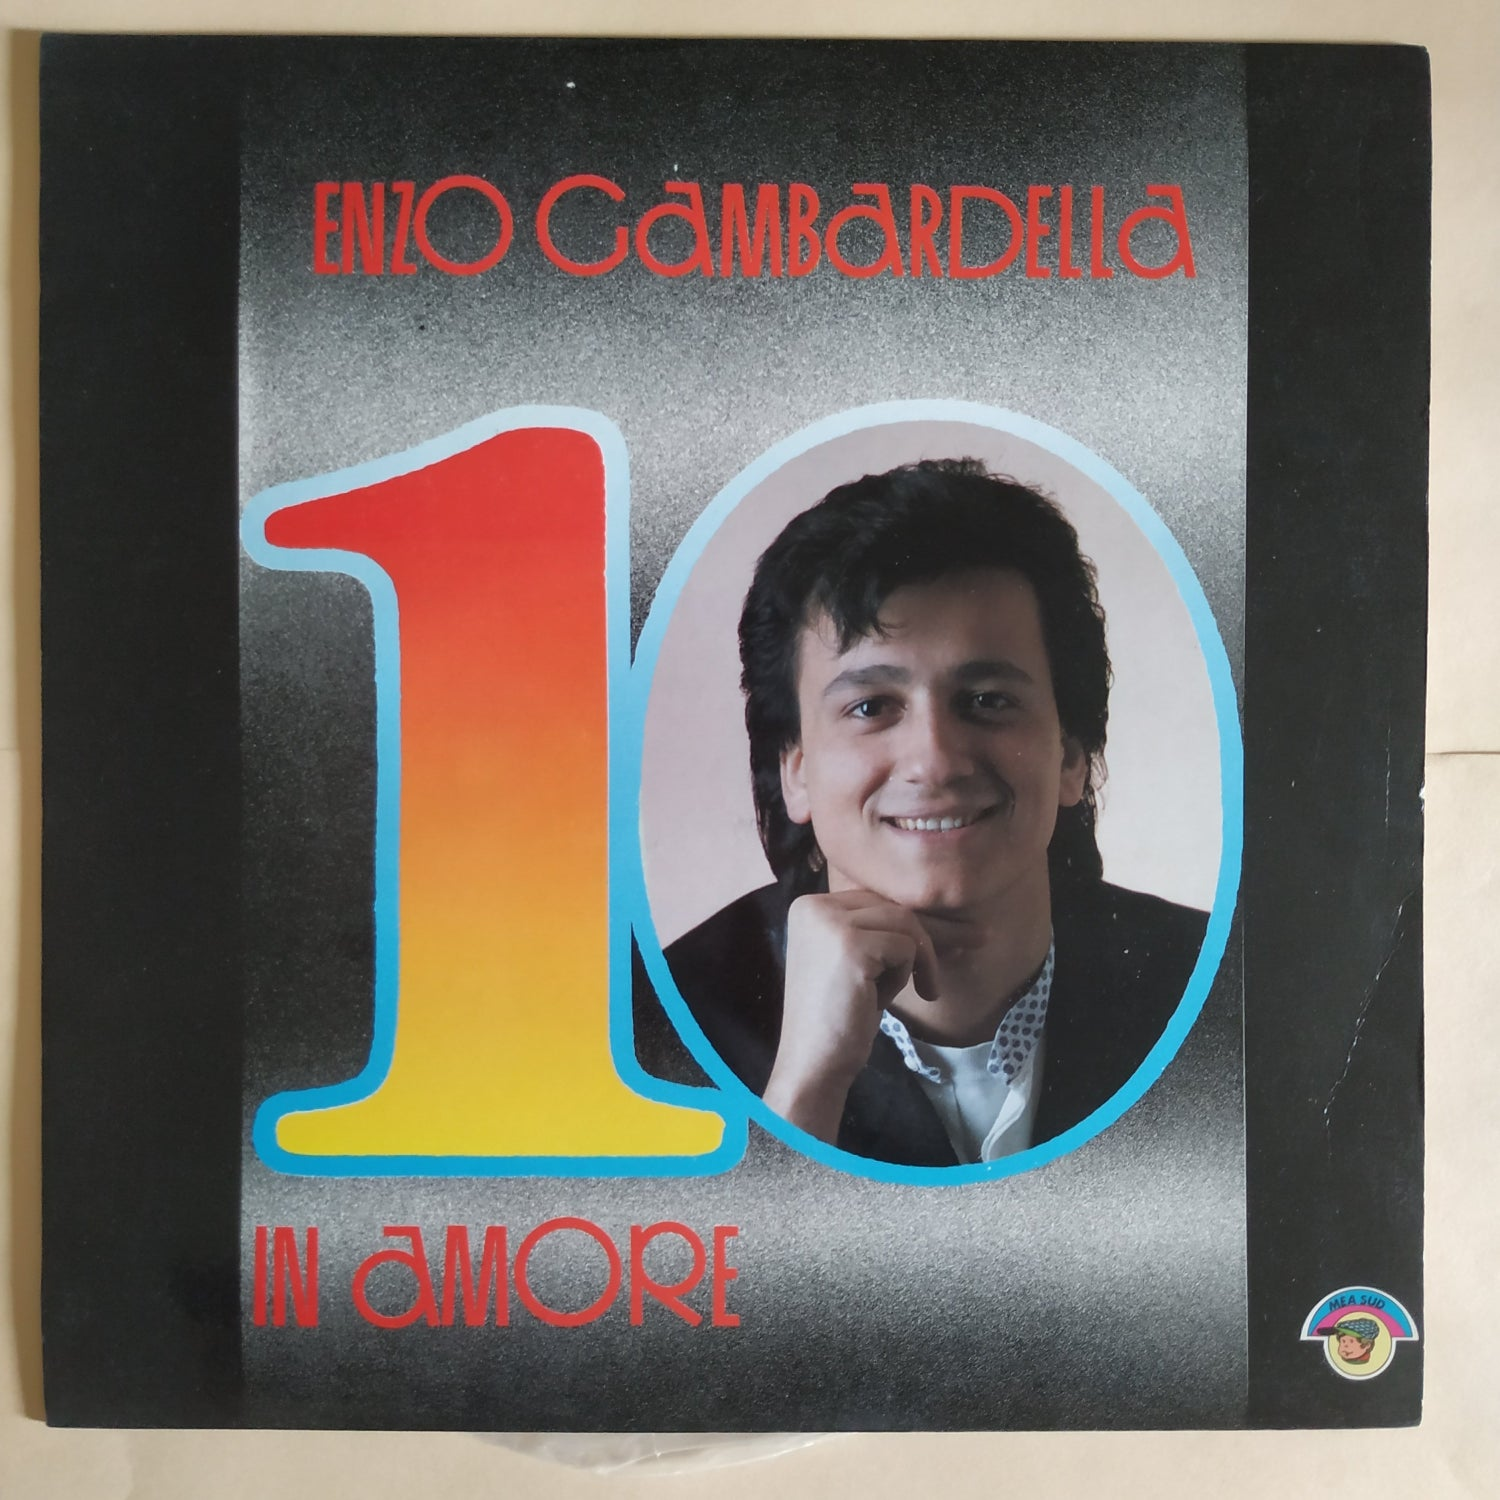 Image of Enzo Gambardella – 10 In Amore